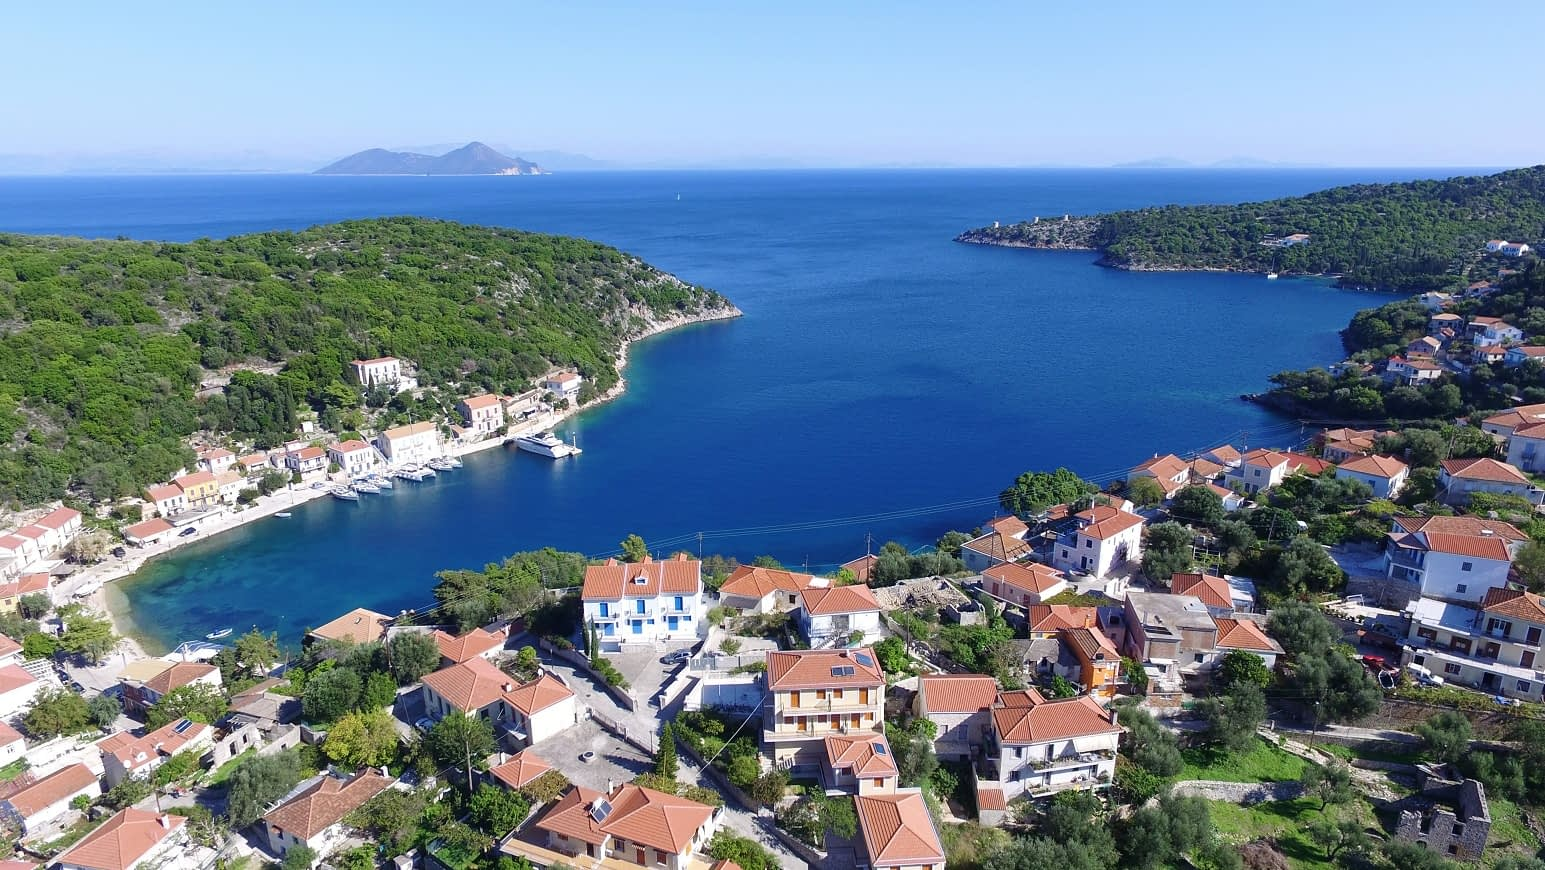 Aerial sea view of Kioni bay Ithaca Greece